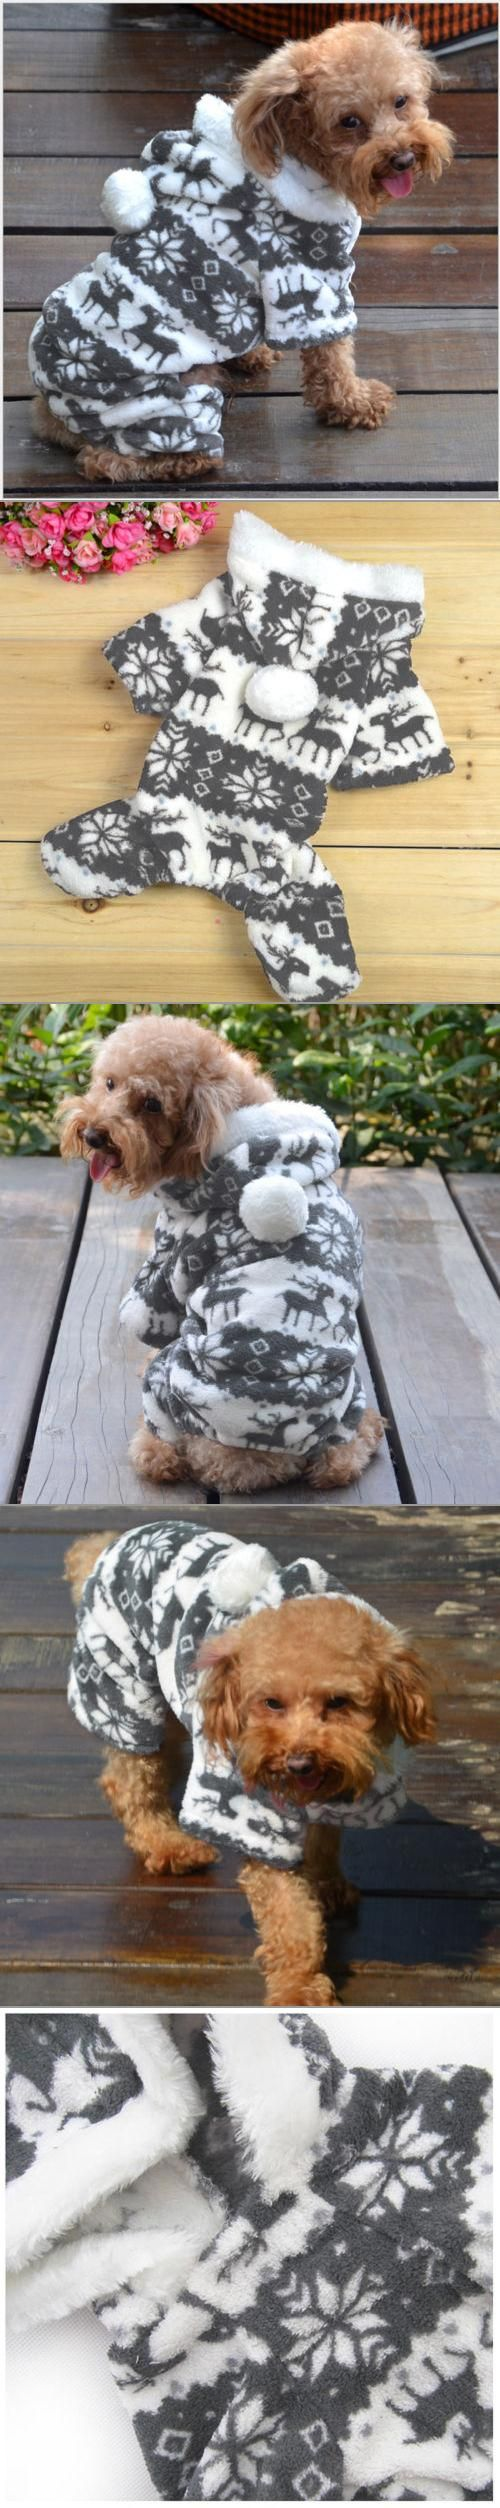 Keep your pets warm this winter with a new fleece jacket!